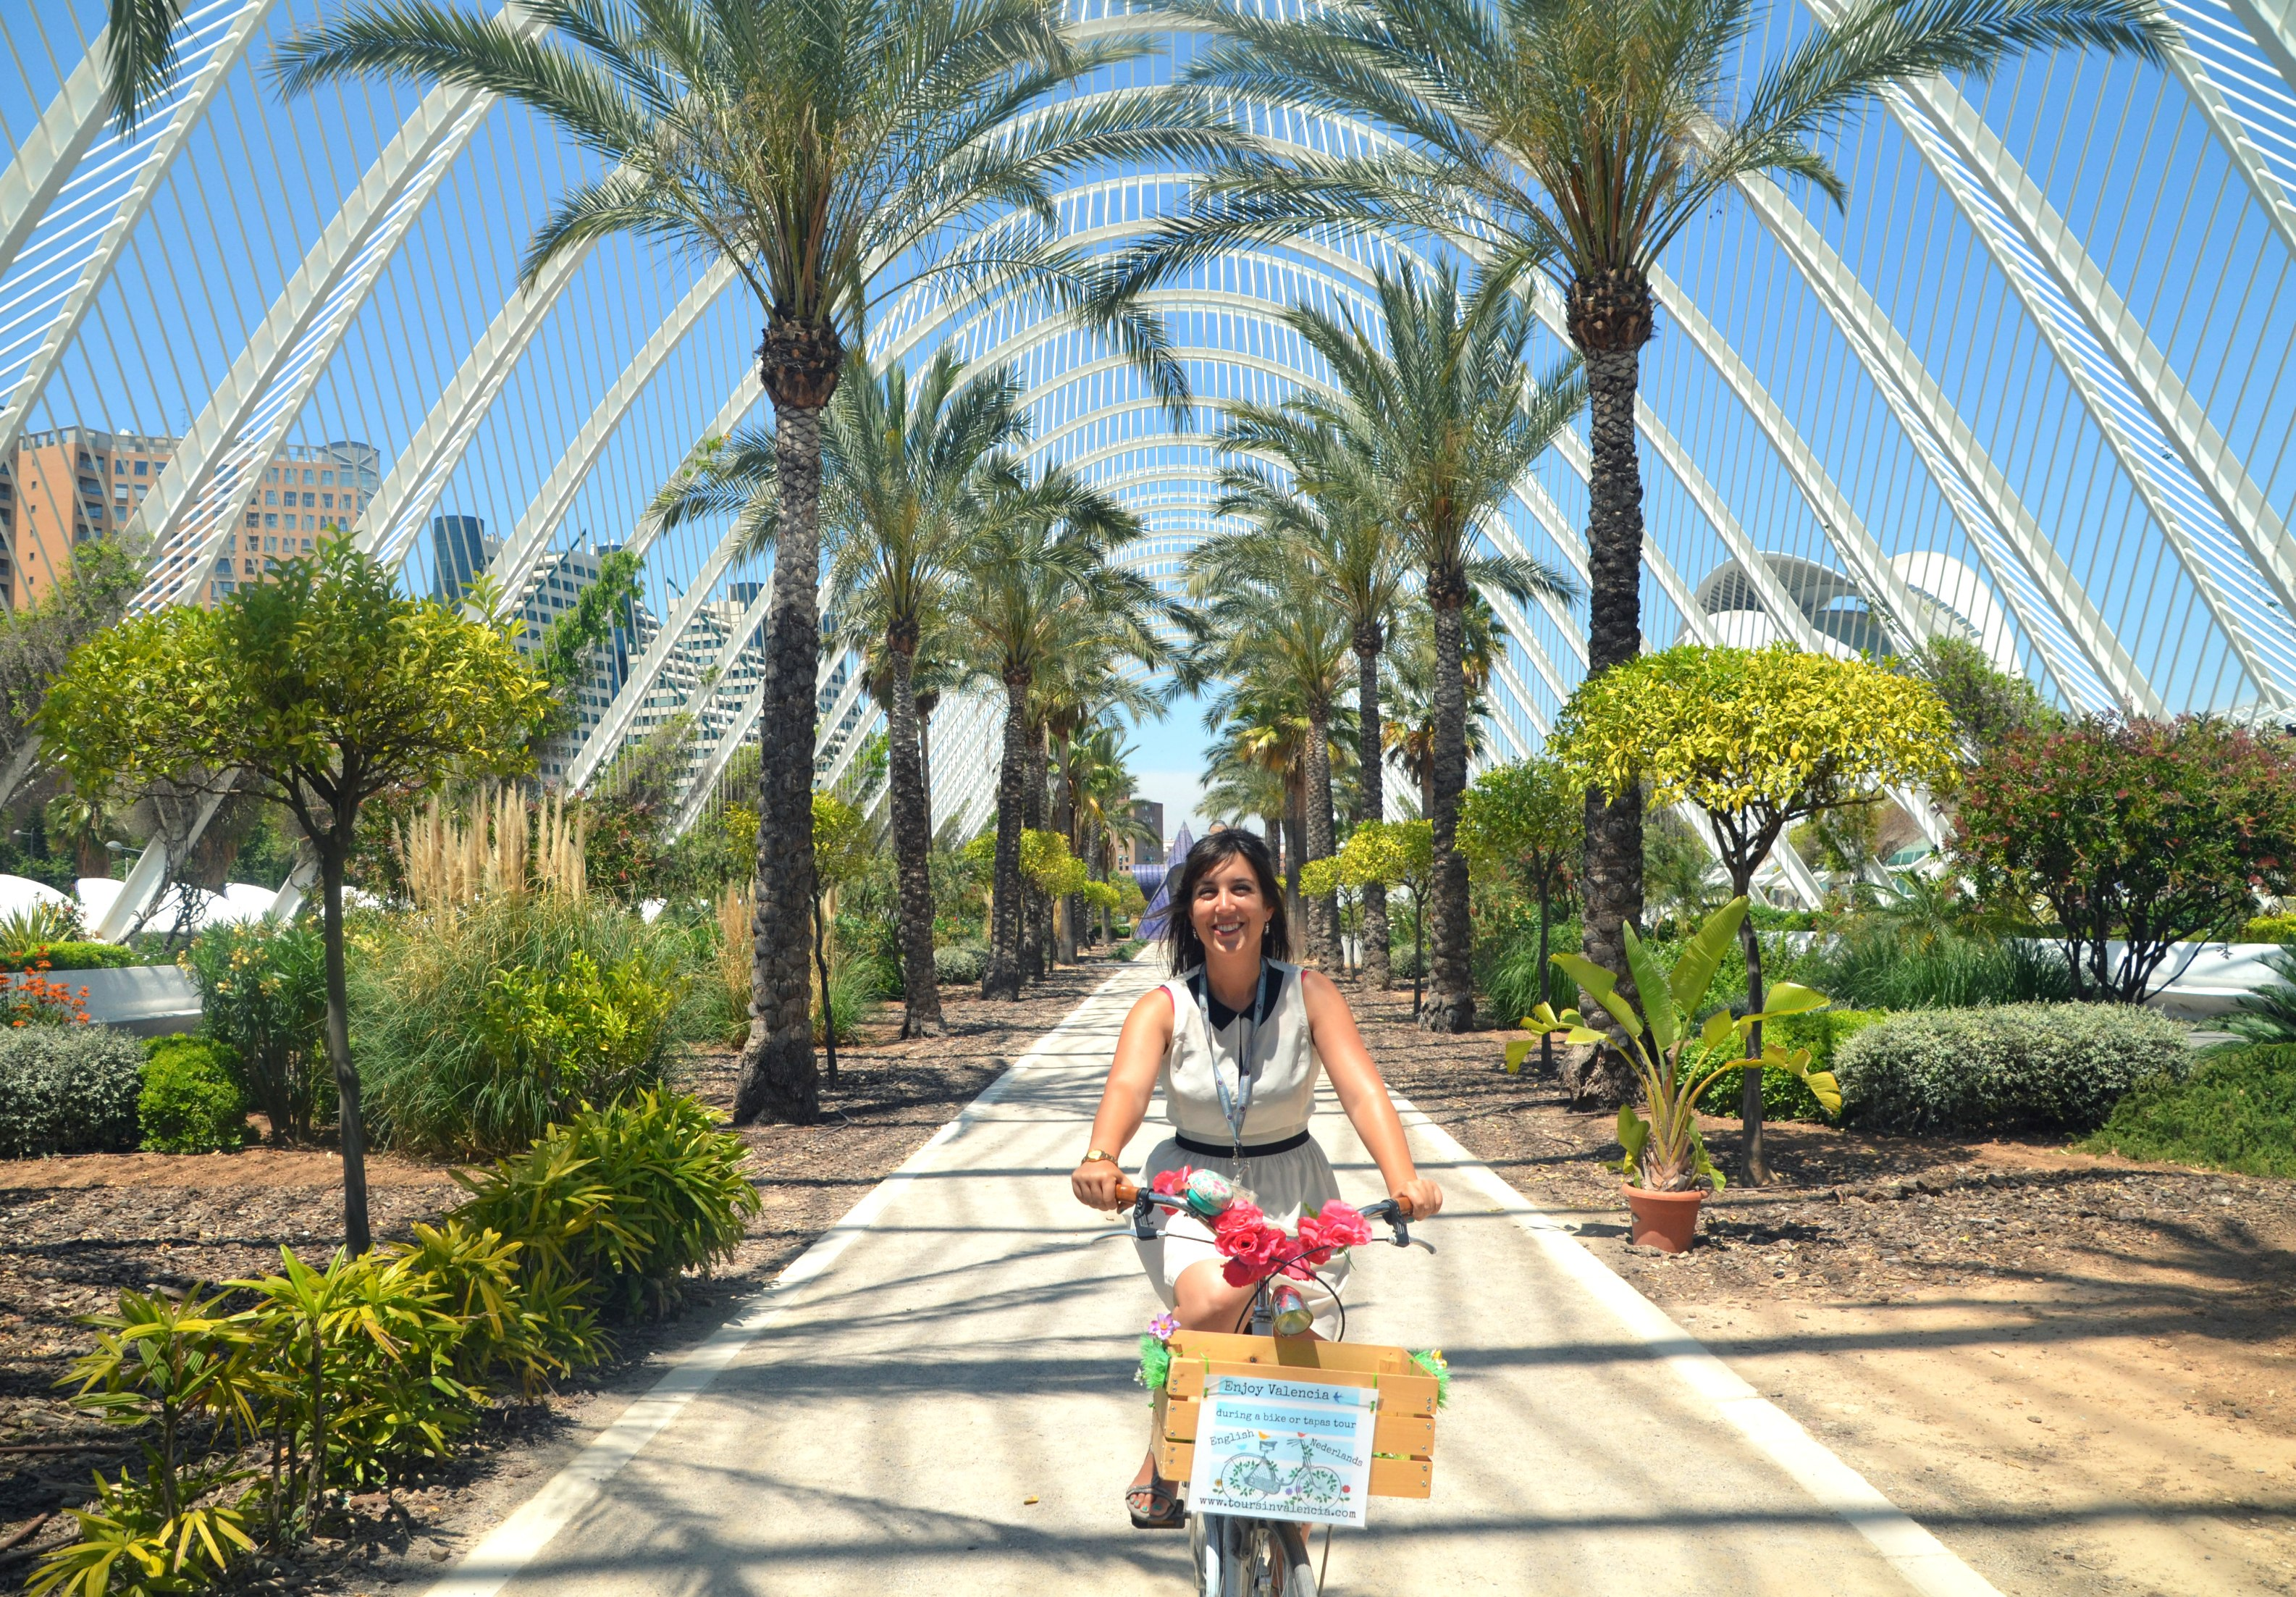 Cycle Through the City of Arts & Sciences